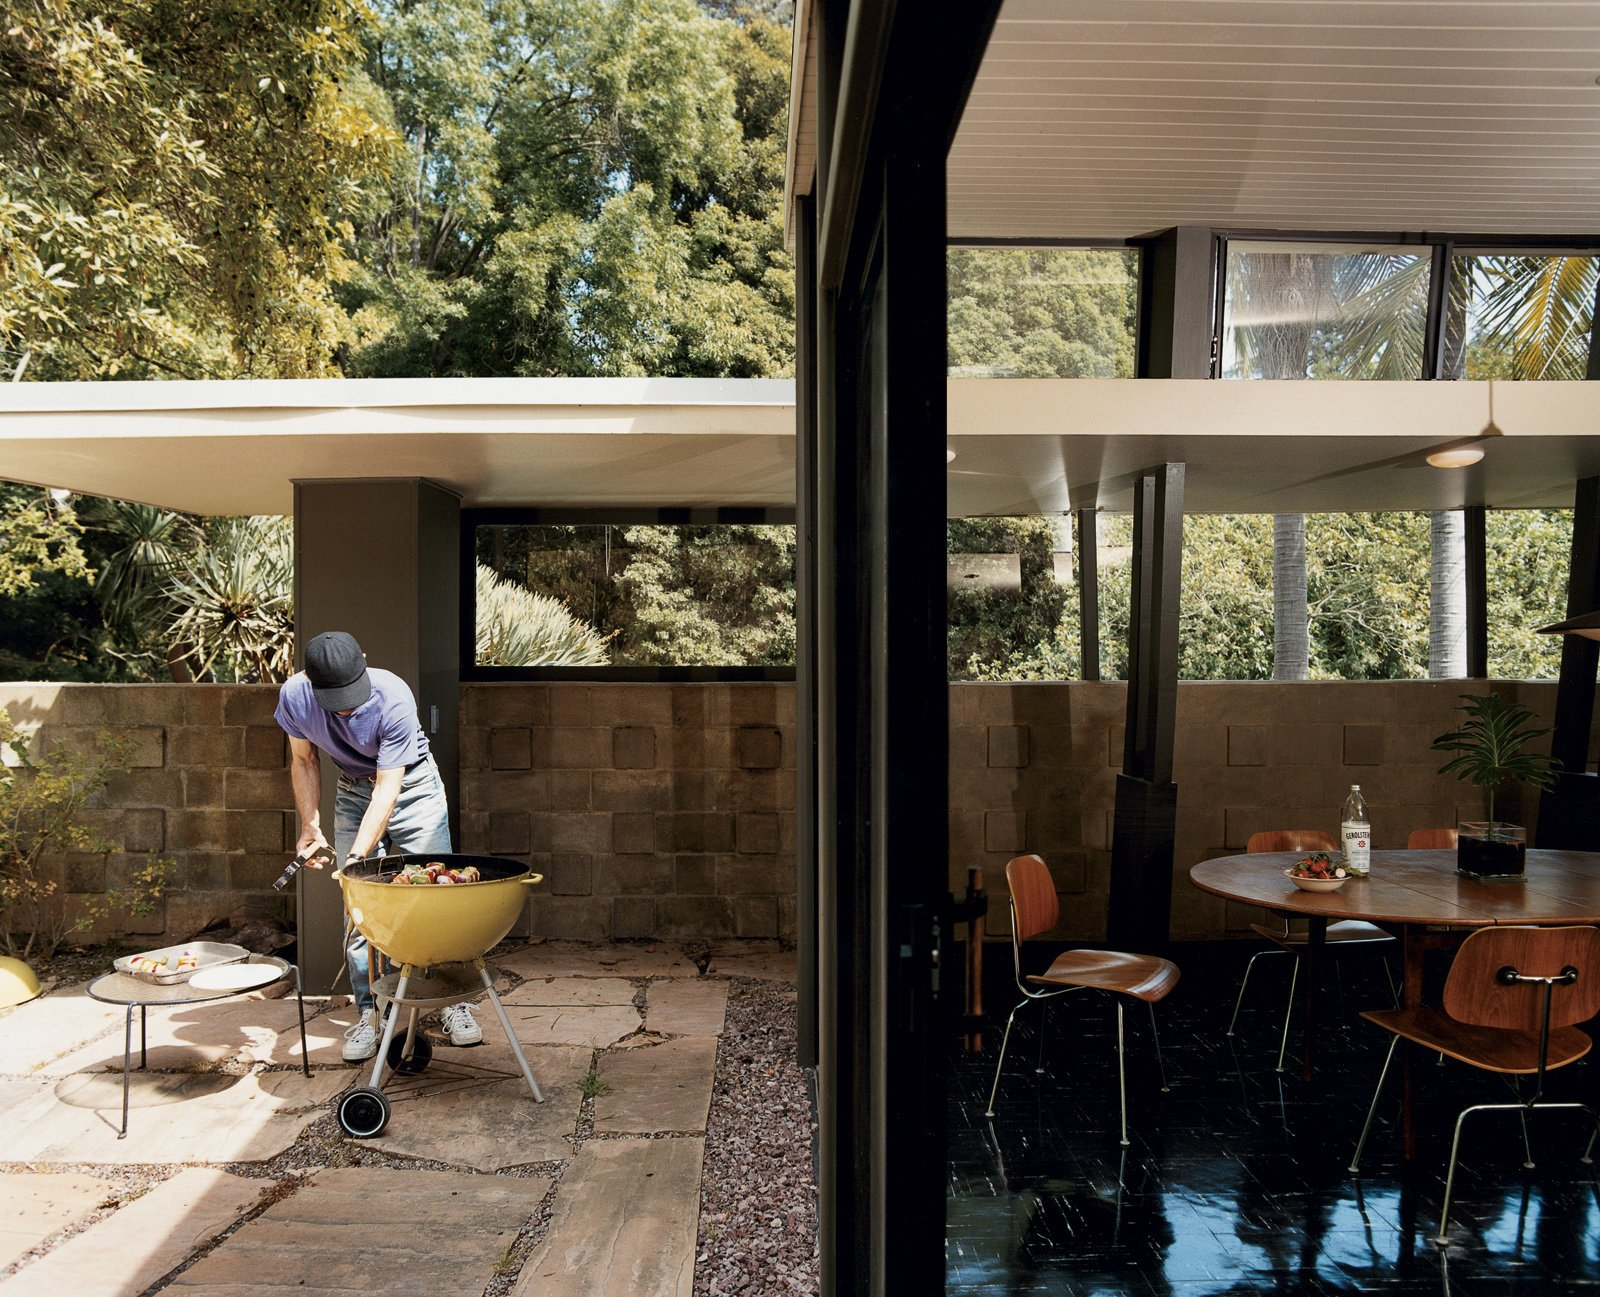 Outdoor, Large Patio, Porch, Deck, and Stone Patio, Porch, Deck In his writing geared toward builders, A. Quincy Jones encouraged using large panes of glass and sliding doors to bridge the exterior and interior. Here, Nick Roberts puts the philosophy to good use for a weekend barbecue.  Photo 2 of 7 in Mutual Fulfilment